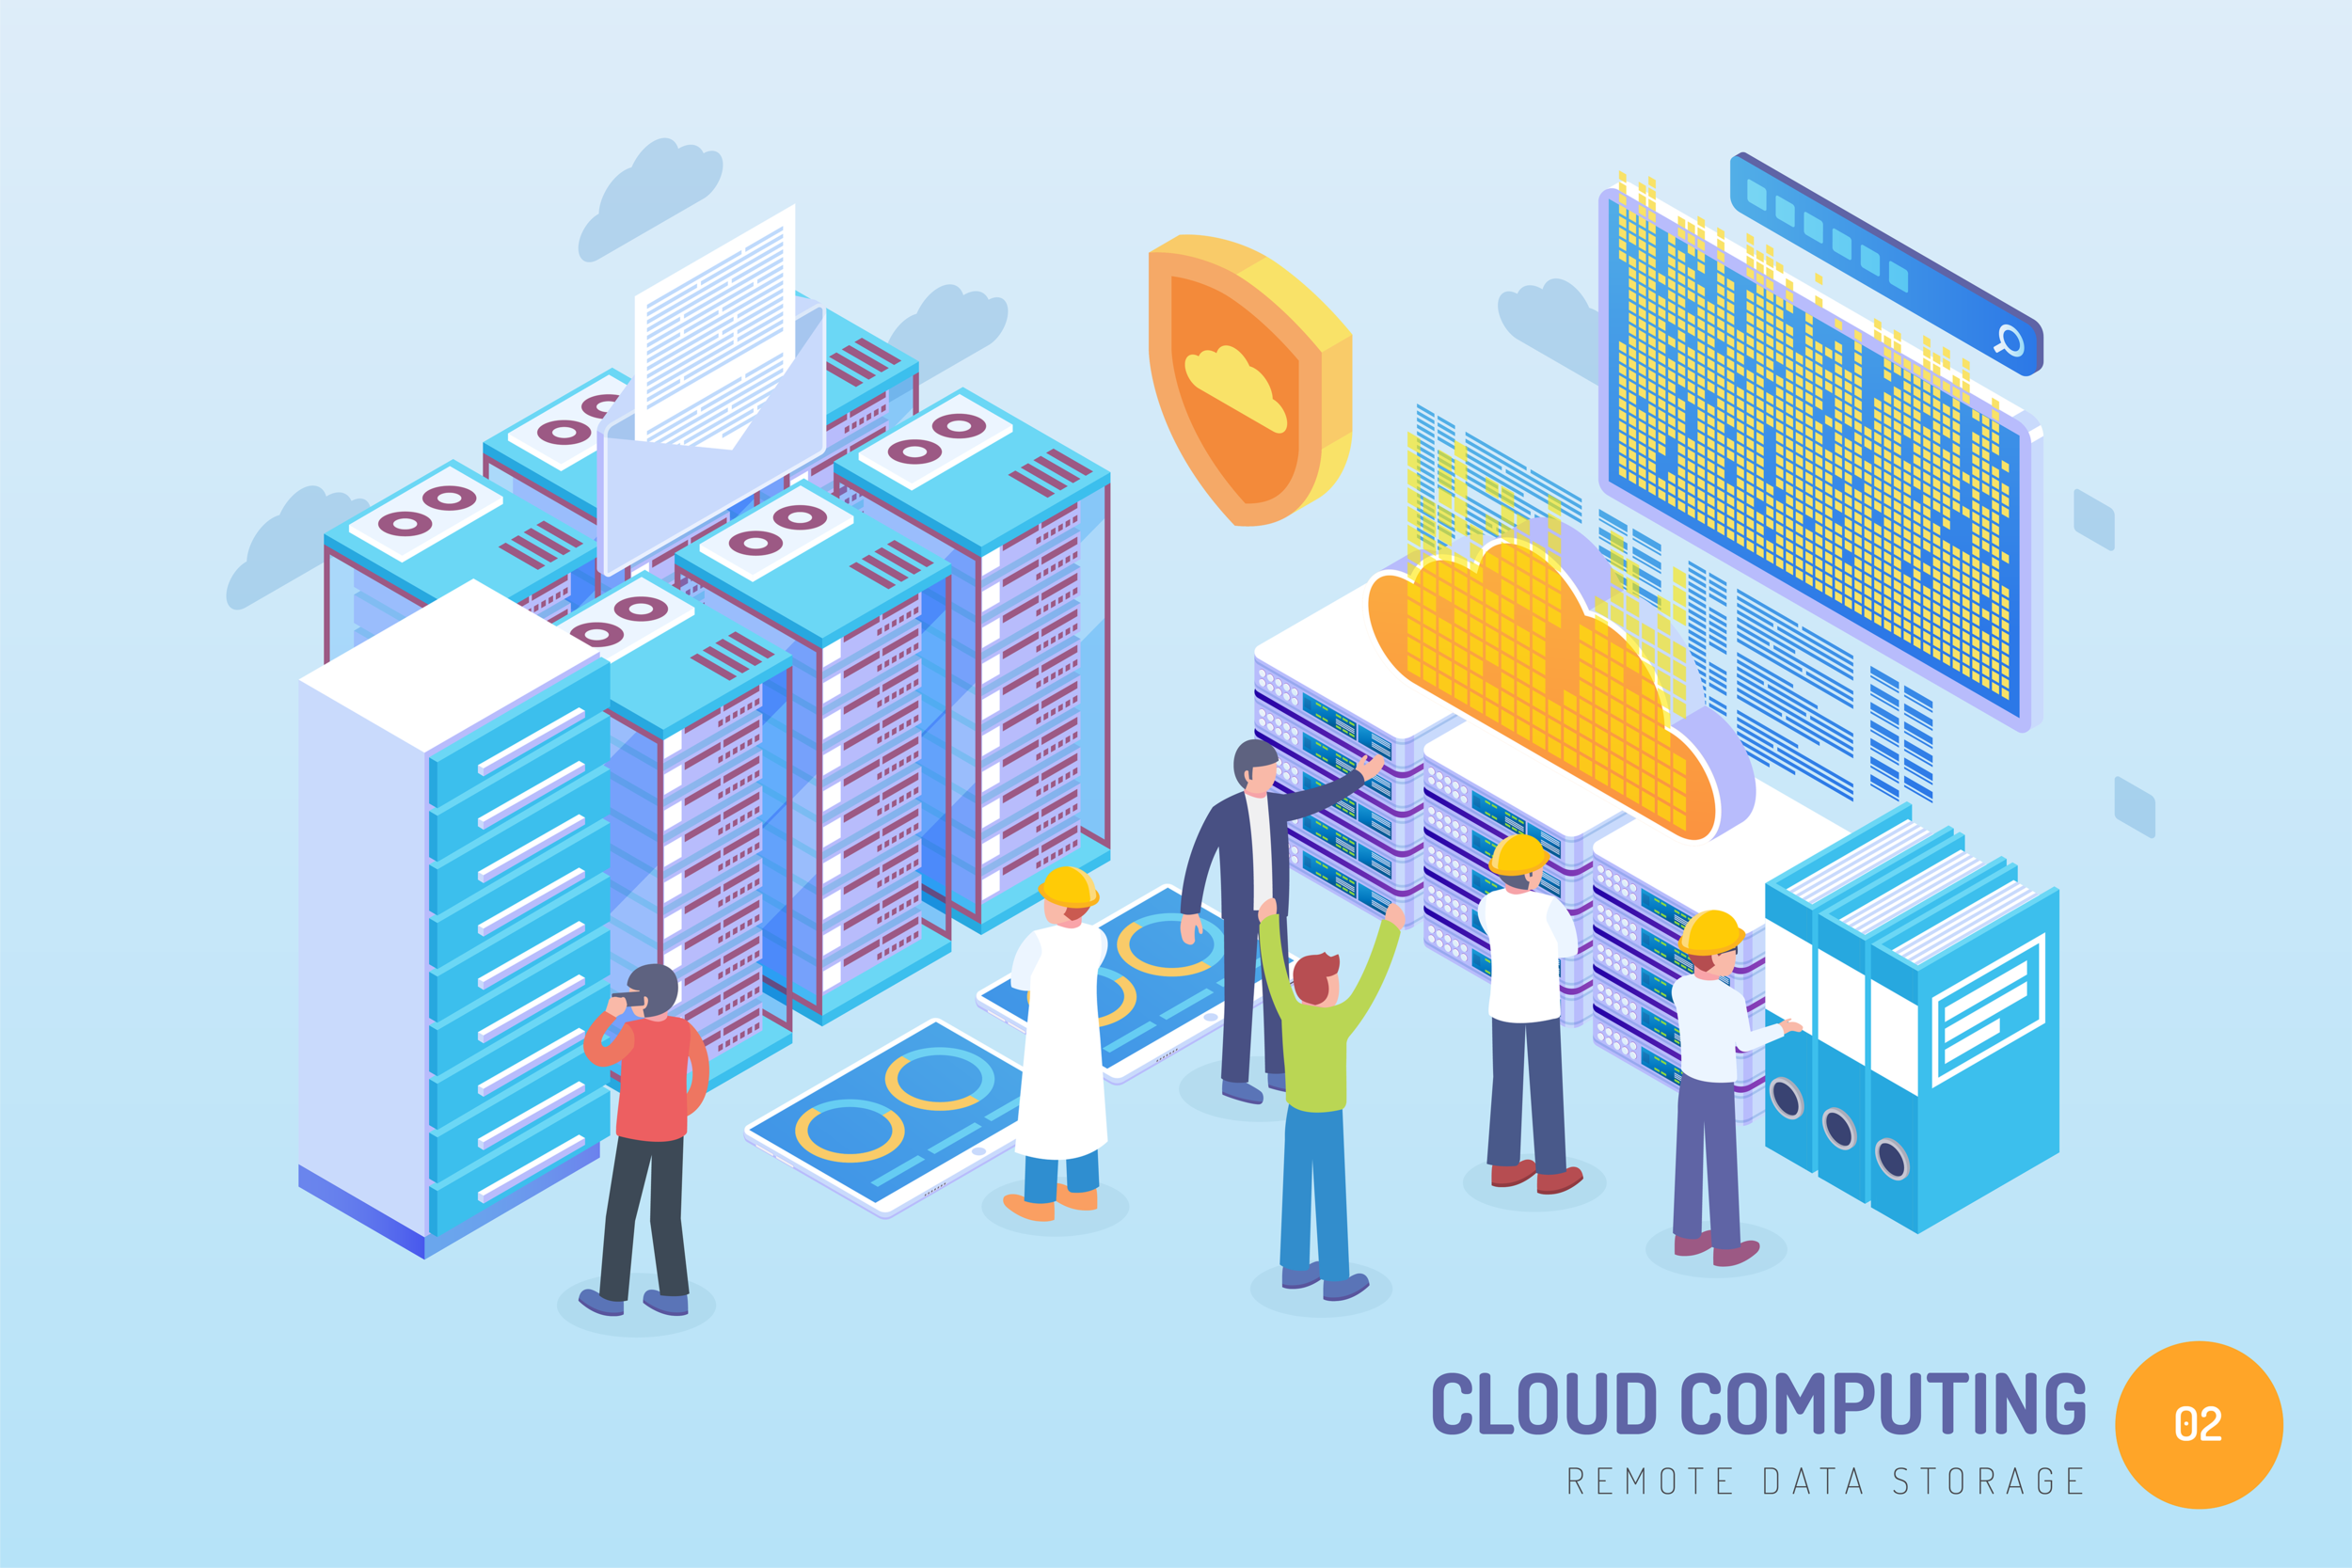 Cloud storage involves remote servers that store, manage and process big data.